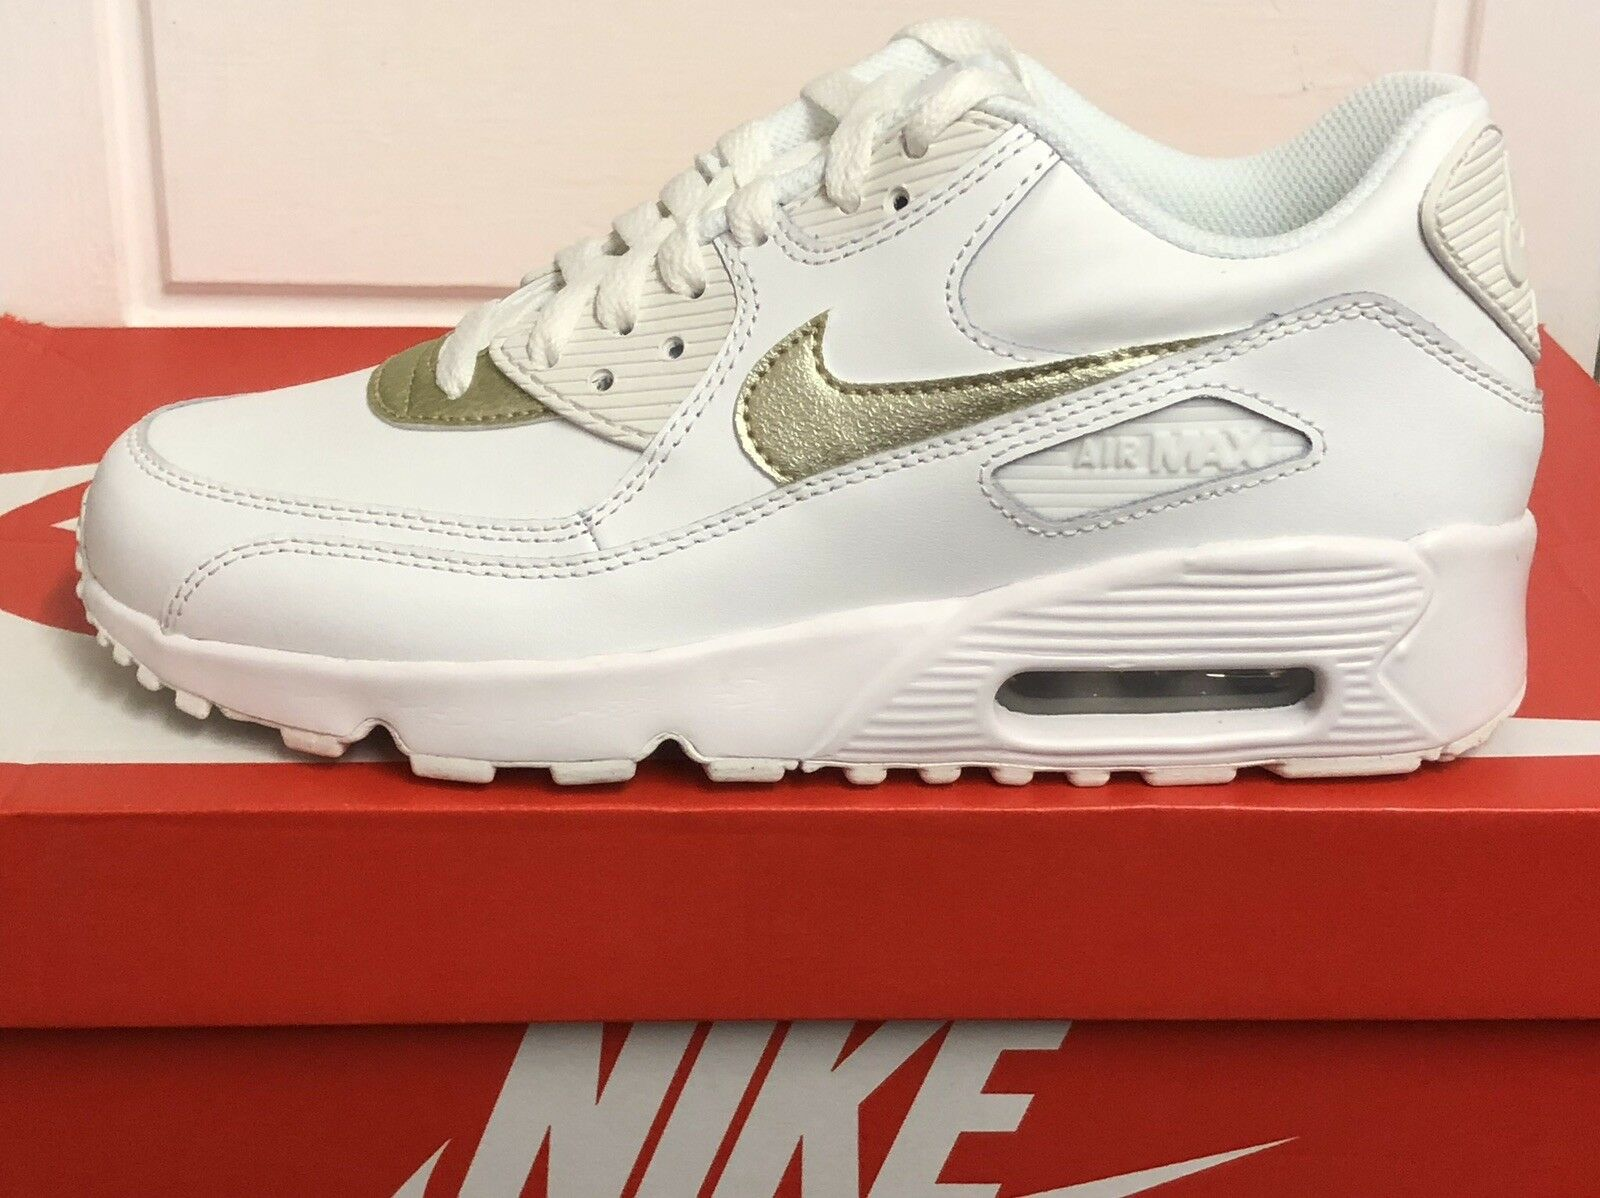 Nike Air Max 90 Cuir Baskets Baskets Chaussures UK 5,5 Eur 38,5 US 6Y